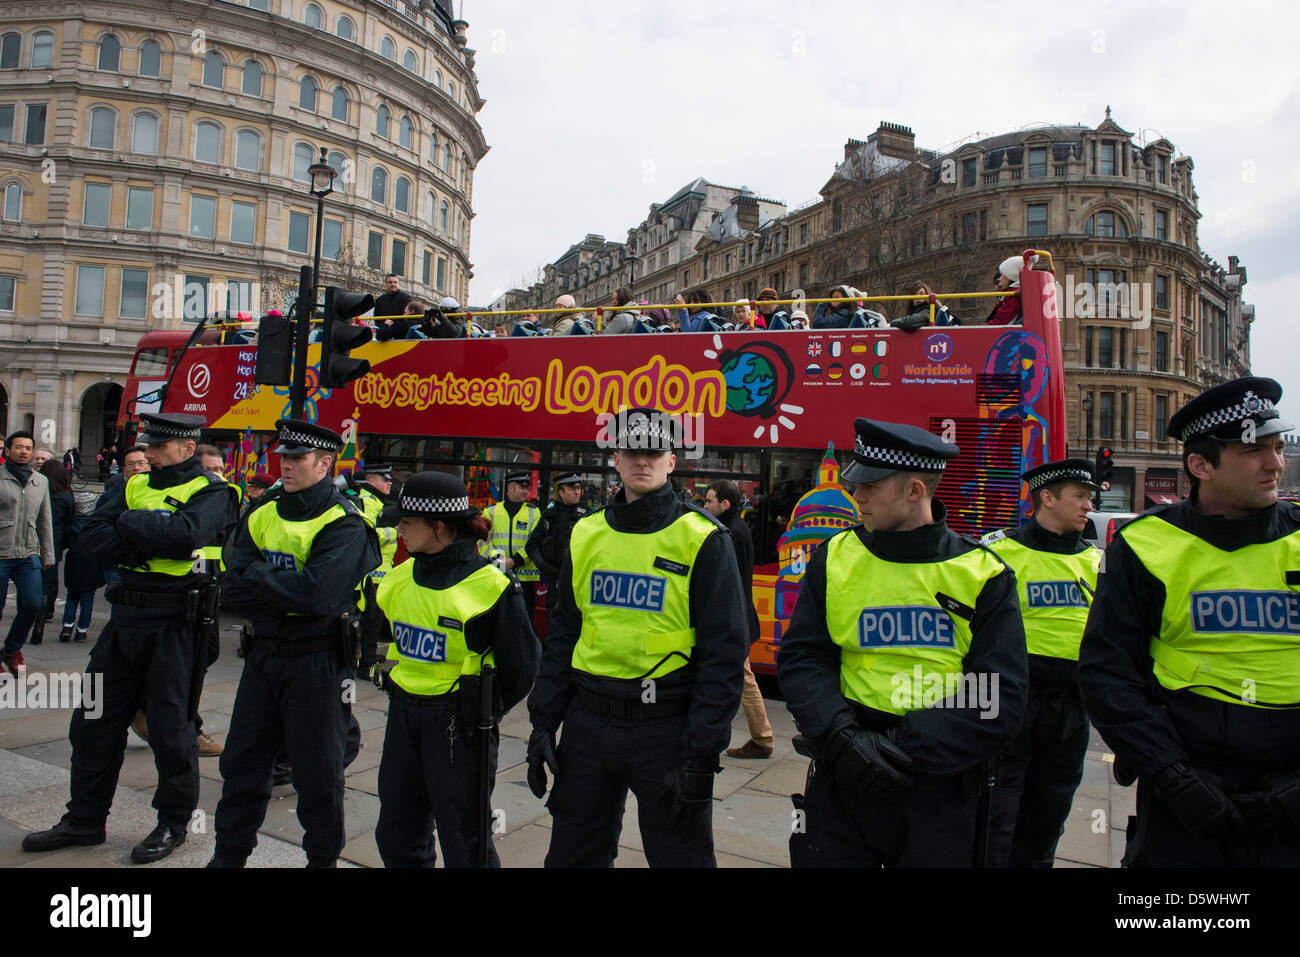 A quirky shot of a line of police and a sightseeing bus at a protest against the Bedroom Tax on 30th March 2013 - Stock Image